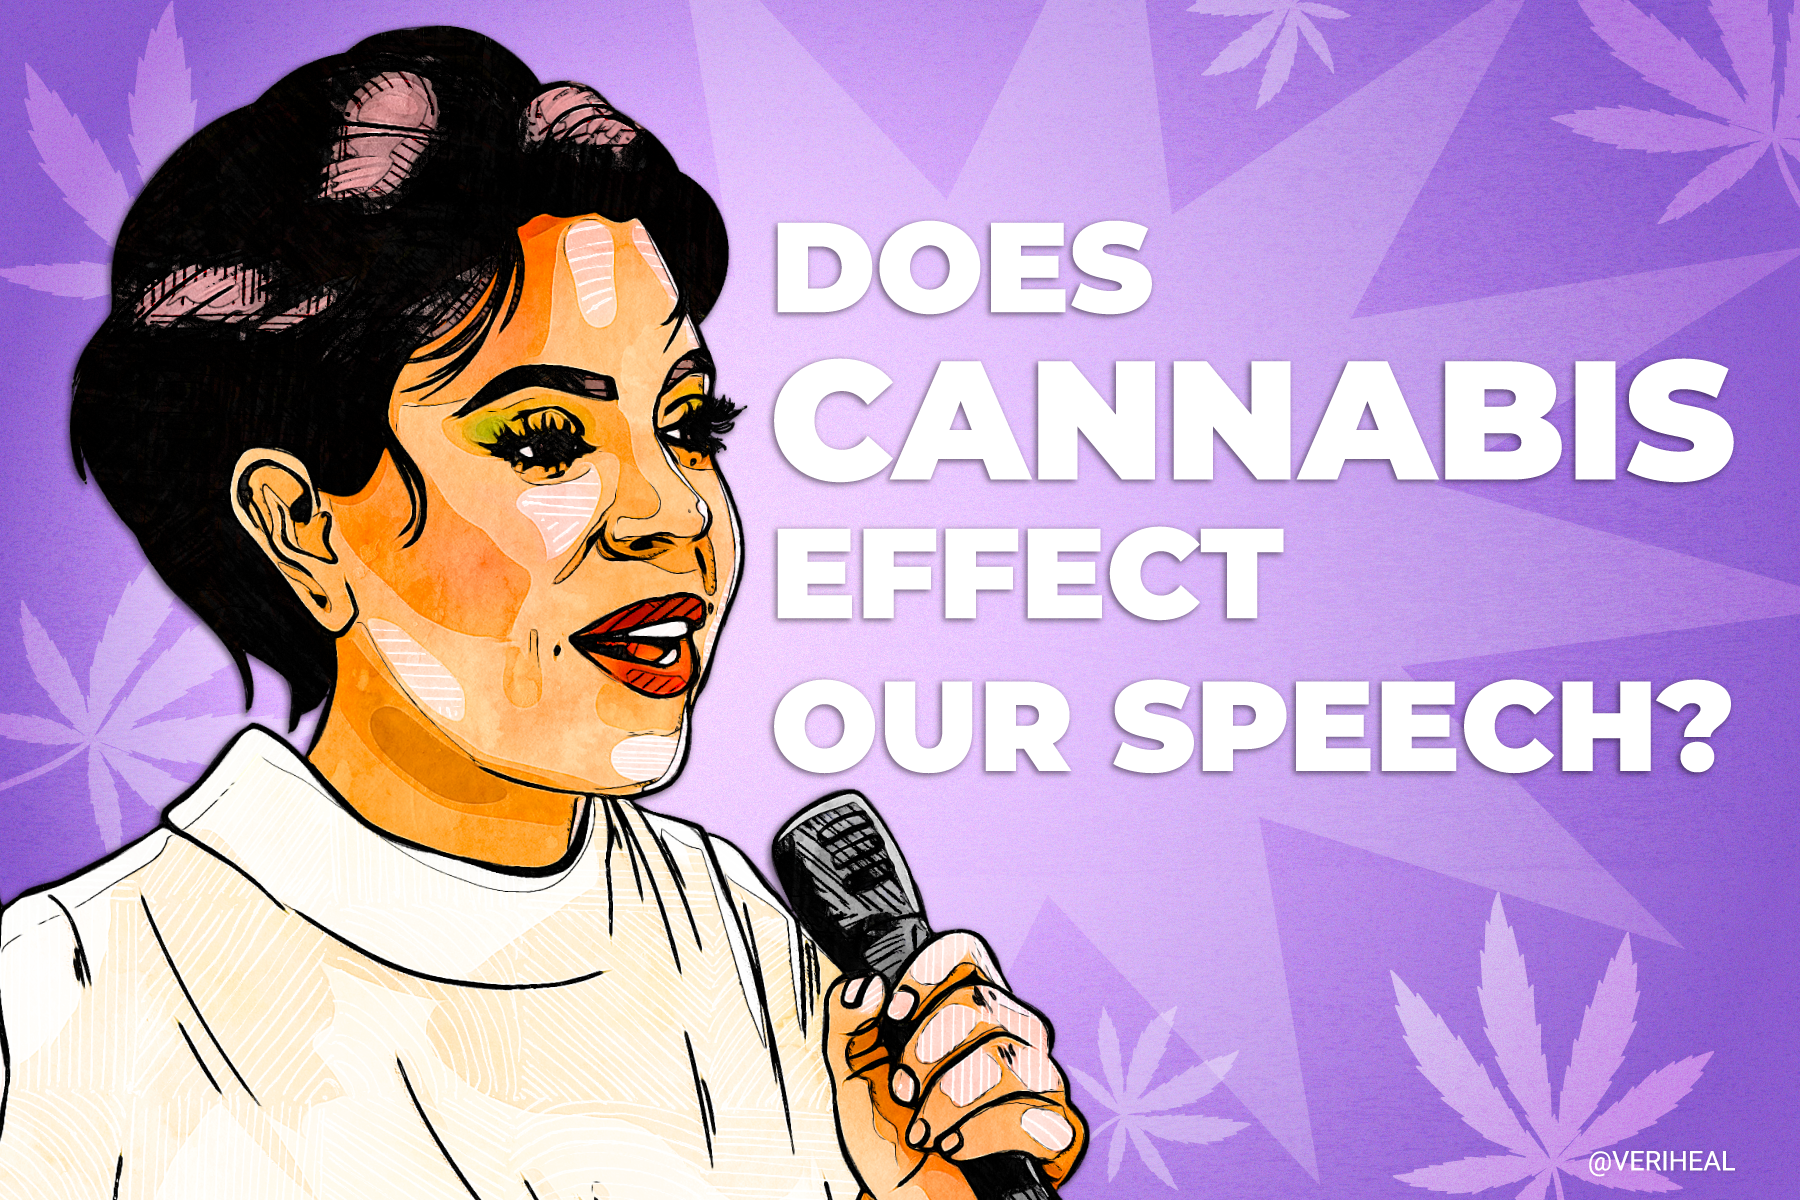 Does Cannabis Affect Our Speech? A New Study Weighs In